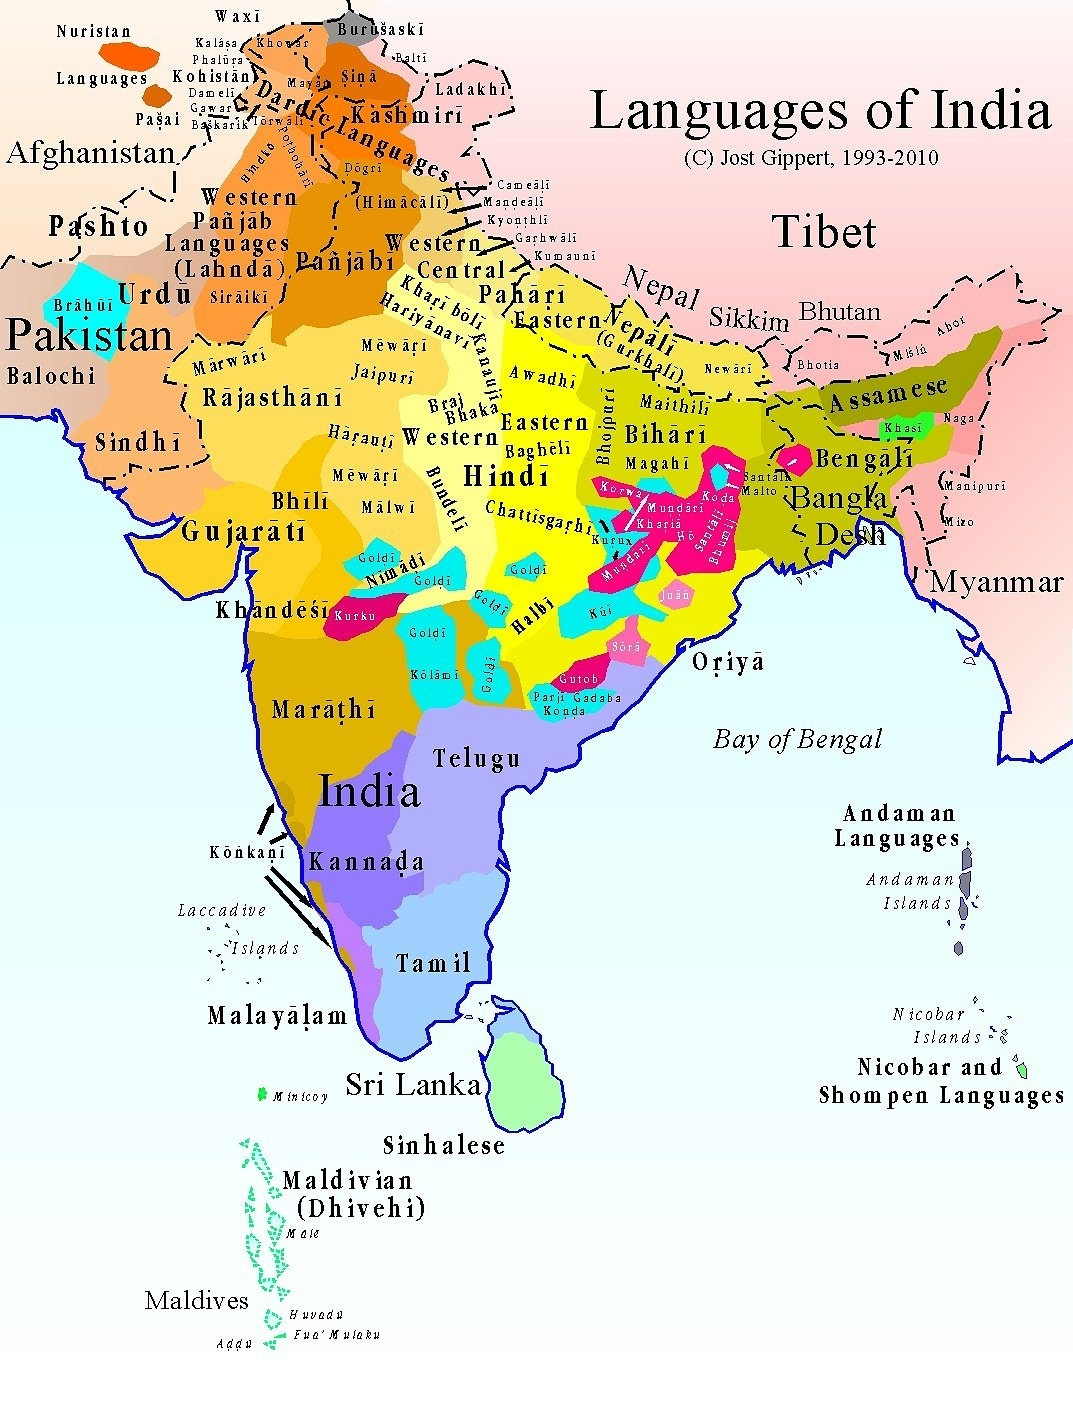 Is Telugu language different from Indian language? - Quora on visakhapatnam india map, india political map, danish india map, maharashtra india map, kannauj india map, asia india map, hindi india map, rajasthan india map, guarani india map, nepali india map, pradesh india map, bangla india map, tamil india map, kannada india map, portuguese india map, dutch india map, hyderabad india map, kerala india map, chennai india map, india the early cultures map,